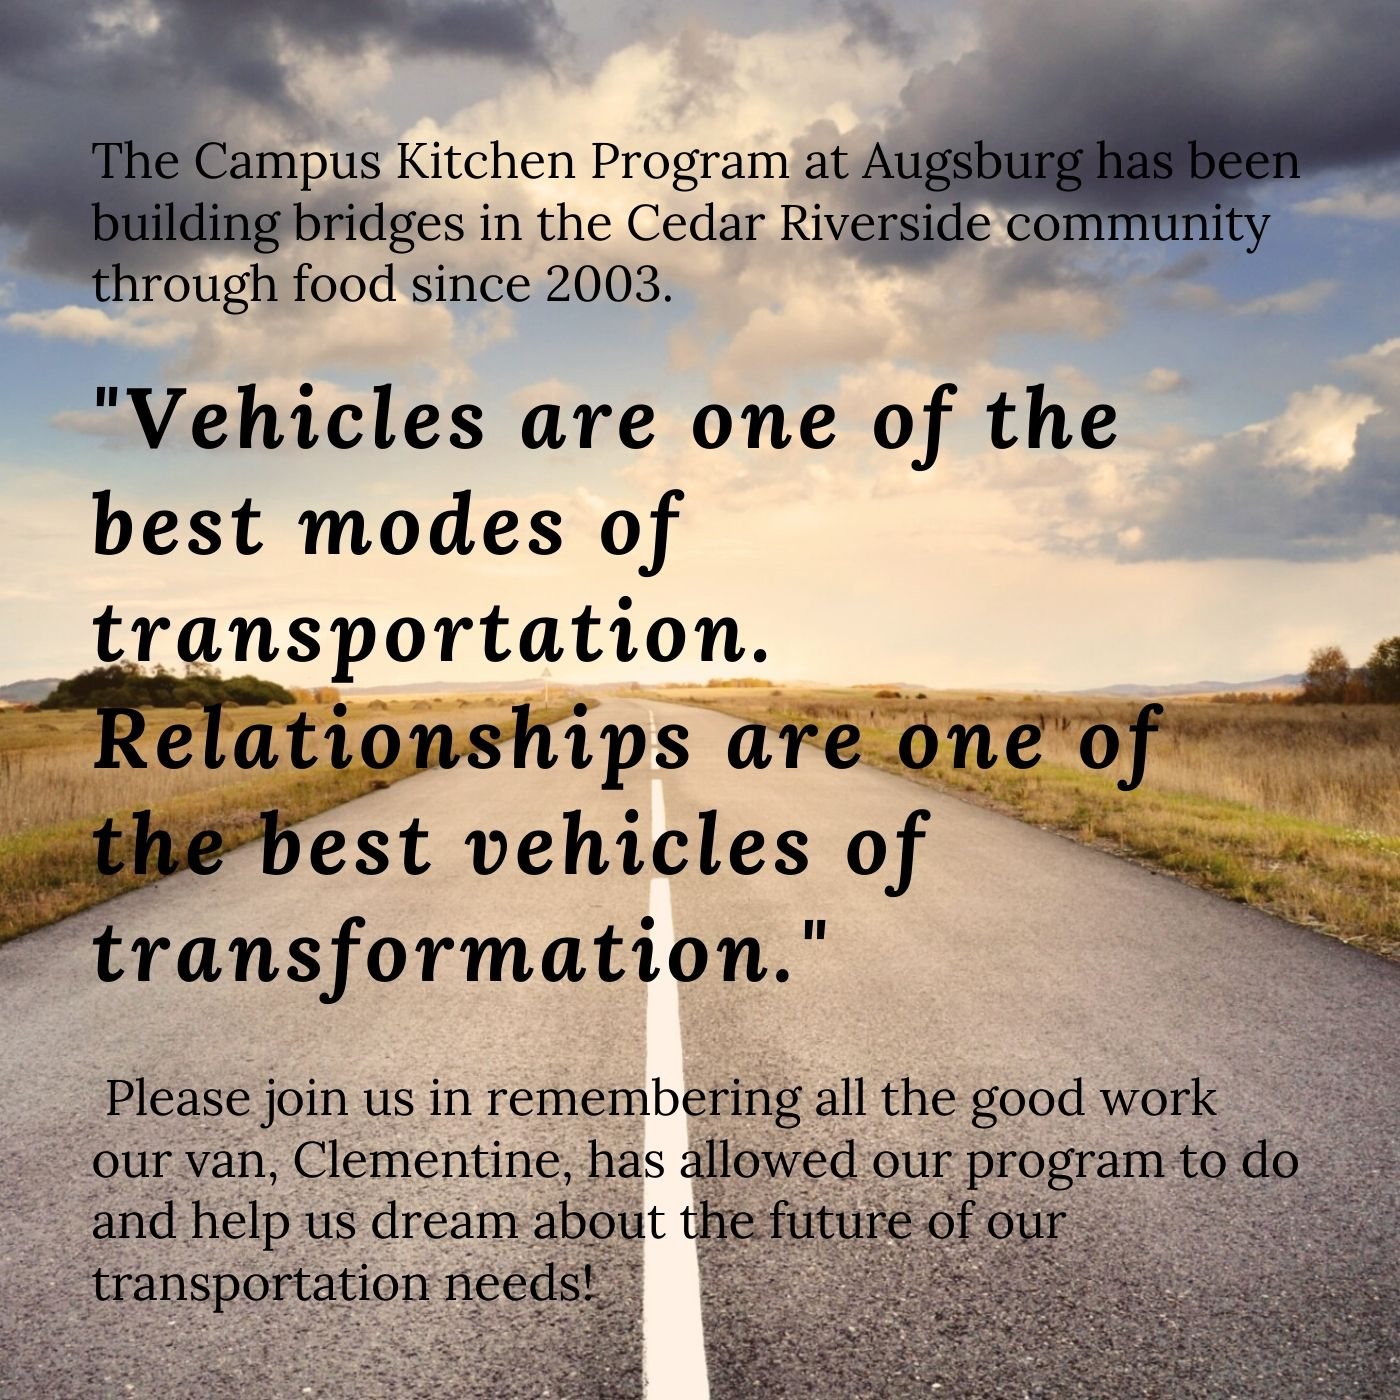 Vehicles are one of the best modes of transportation. Relationships are one of the best vehicles of transformation.